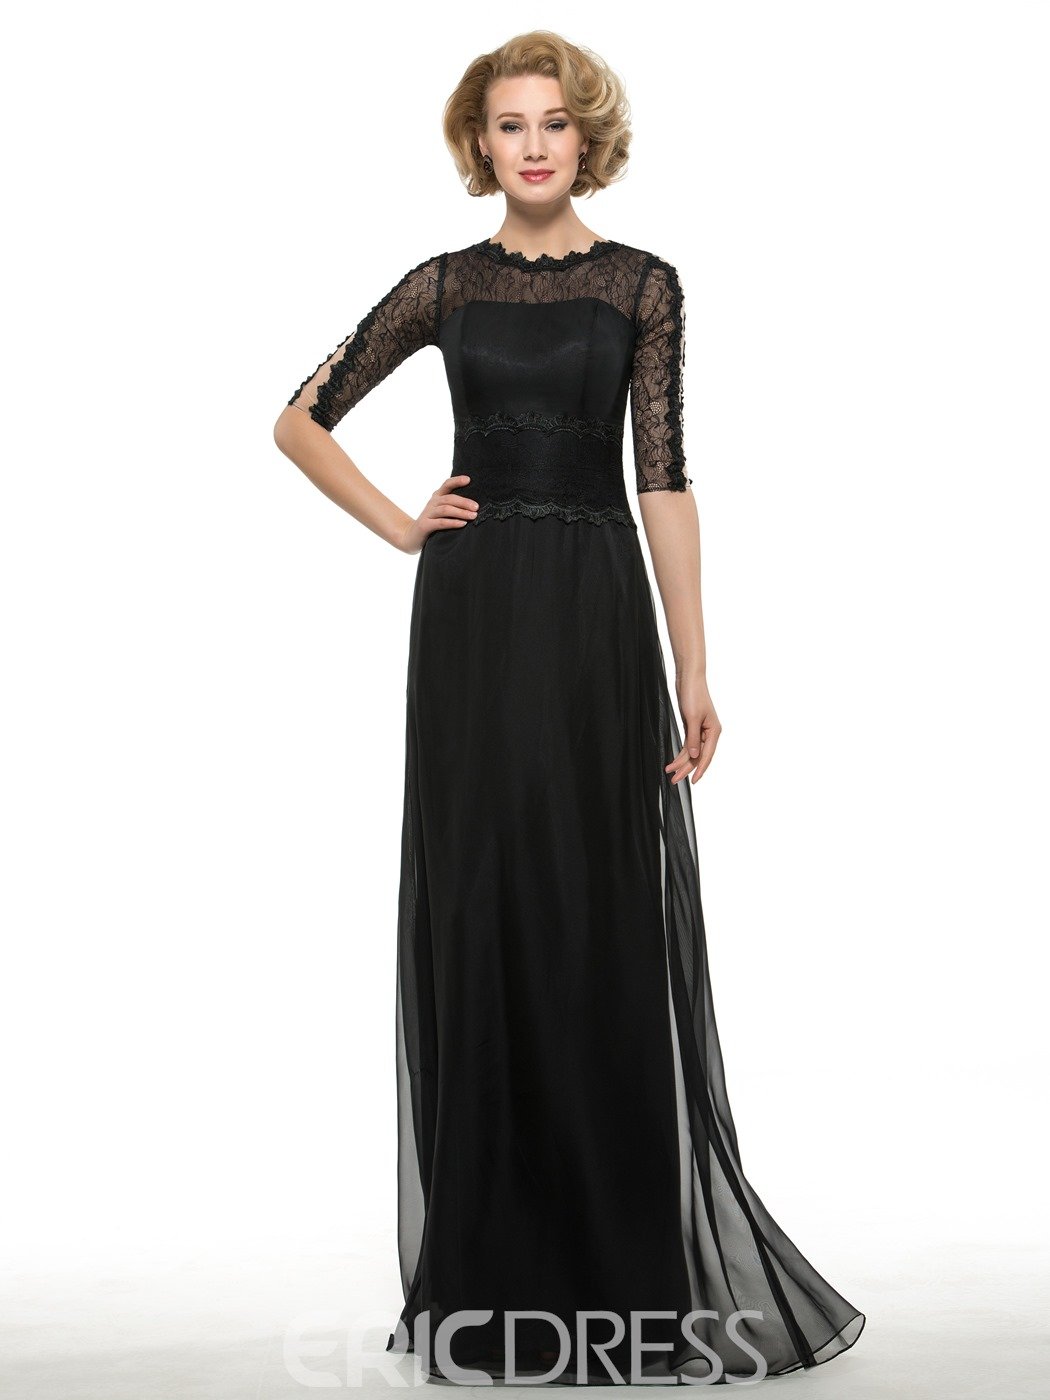 accd68368c9 Ericdress Modest Jewel A Line Mother Of The Bride Dress 11645888 ...